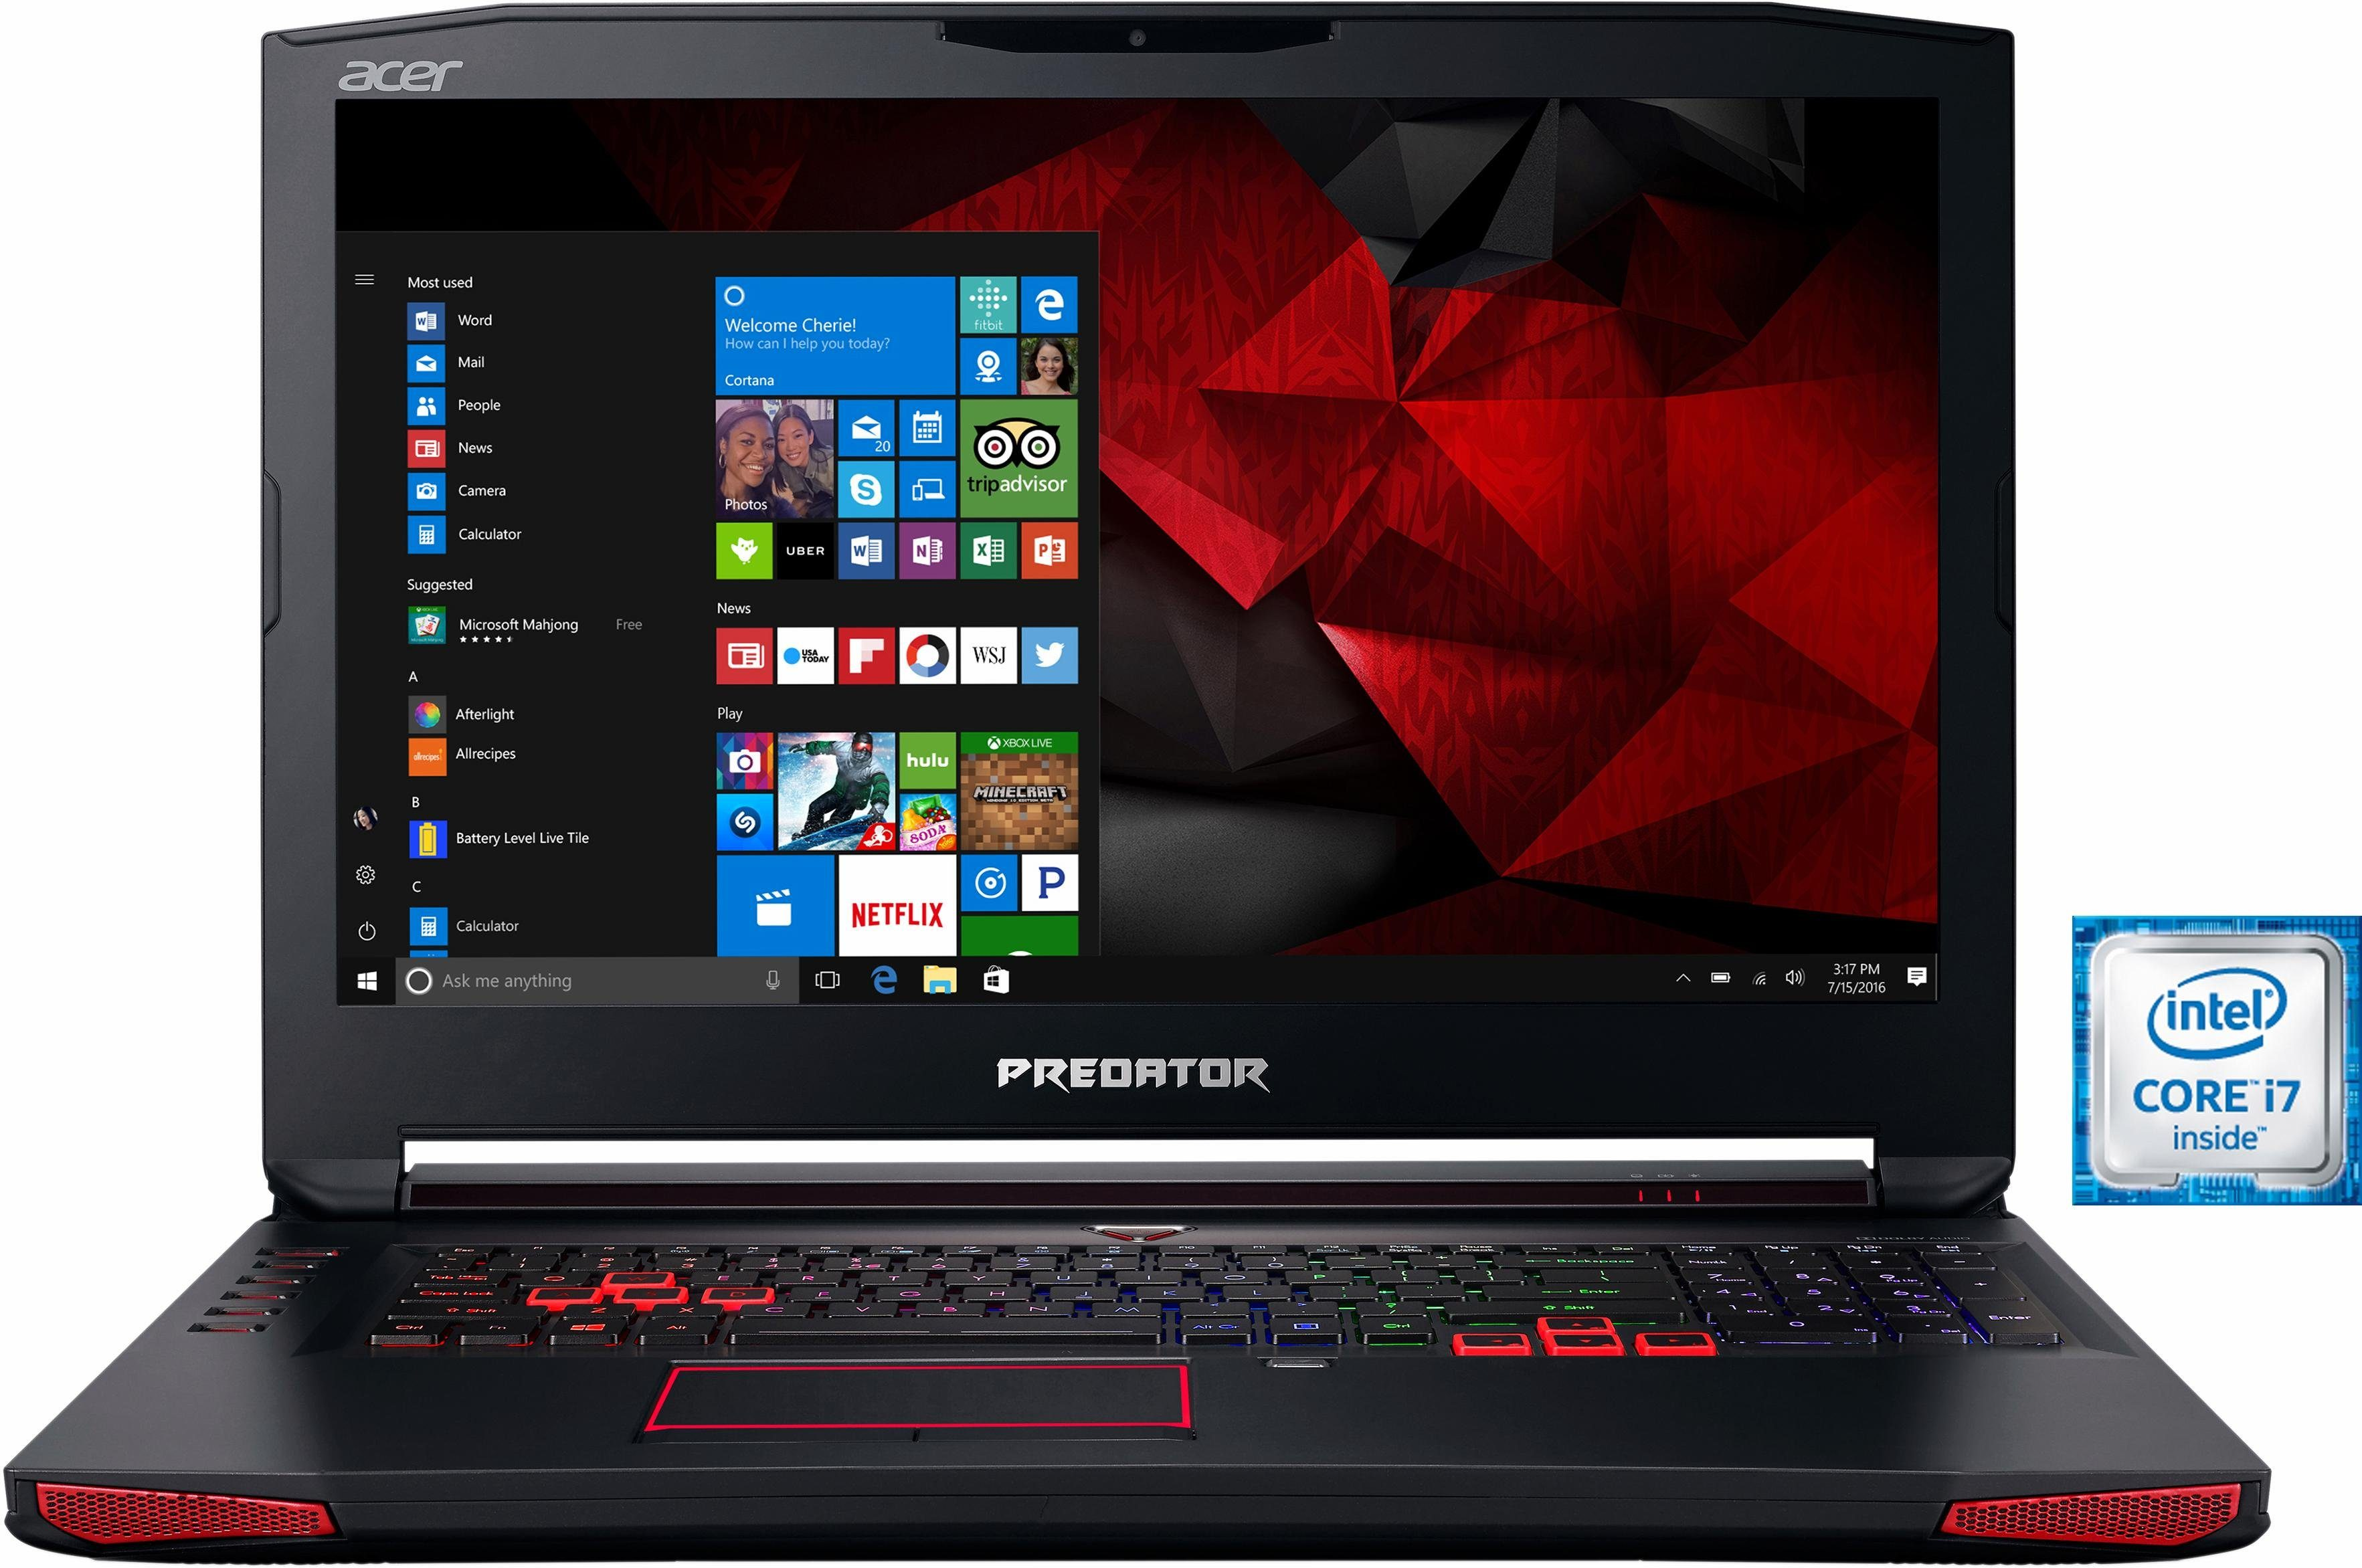 Acer Predator G9-793-77B6 Notebook, Intel® Core™ i7, 43,9 cm (17,3 Zoll), 1256 GB Speicher